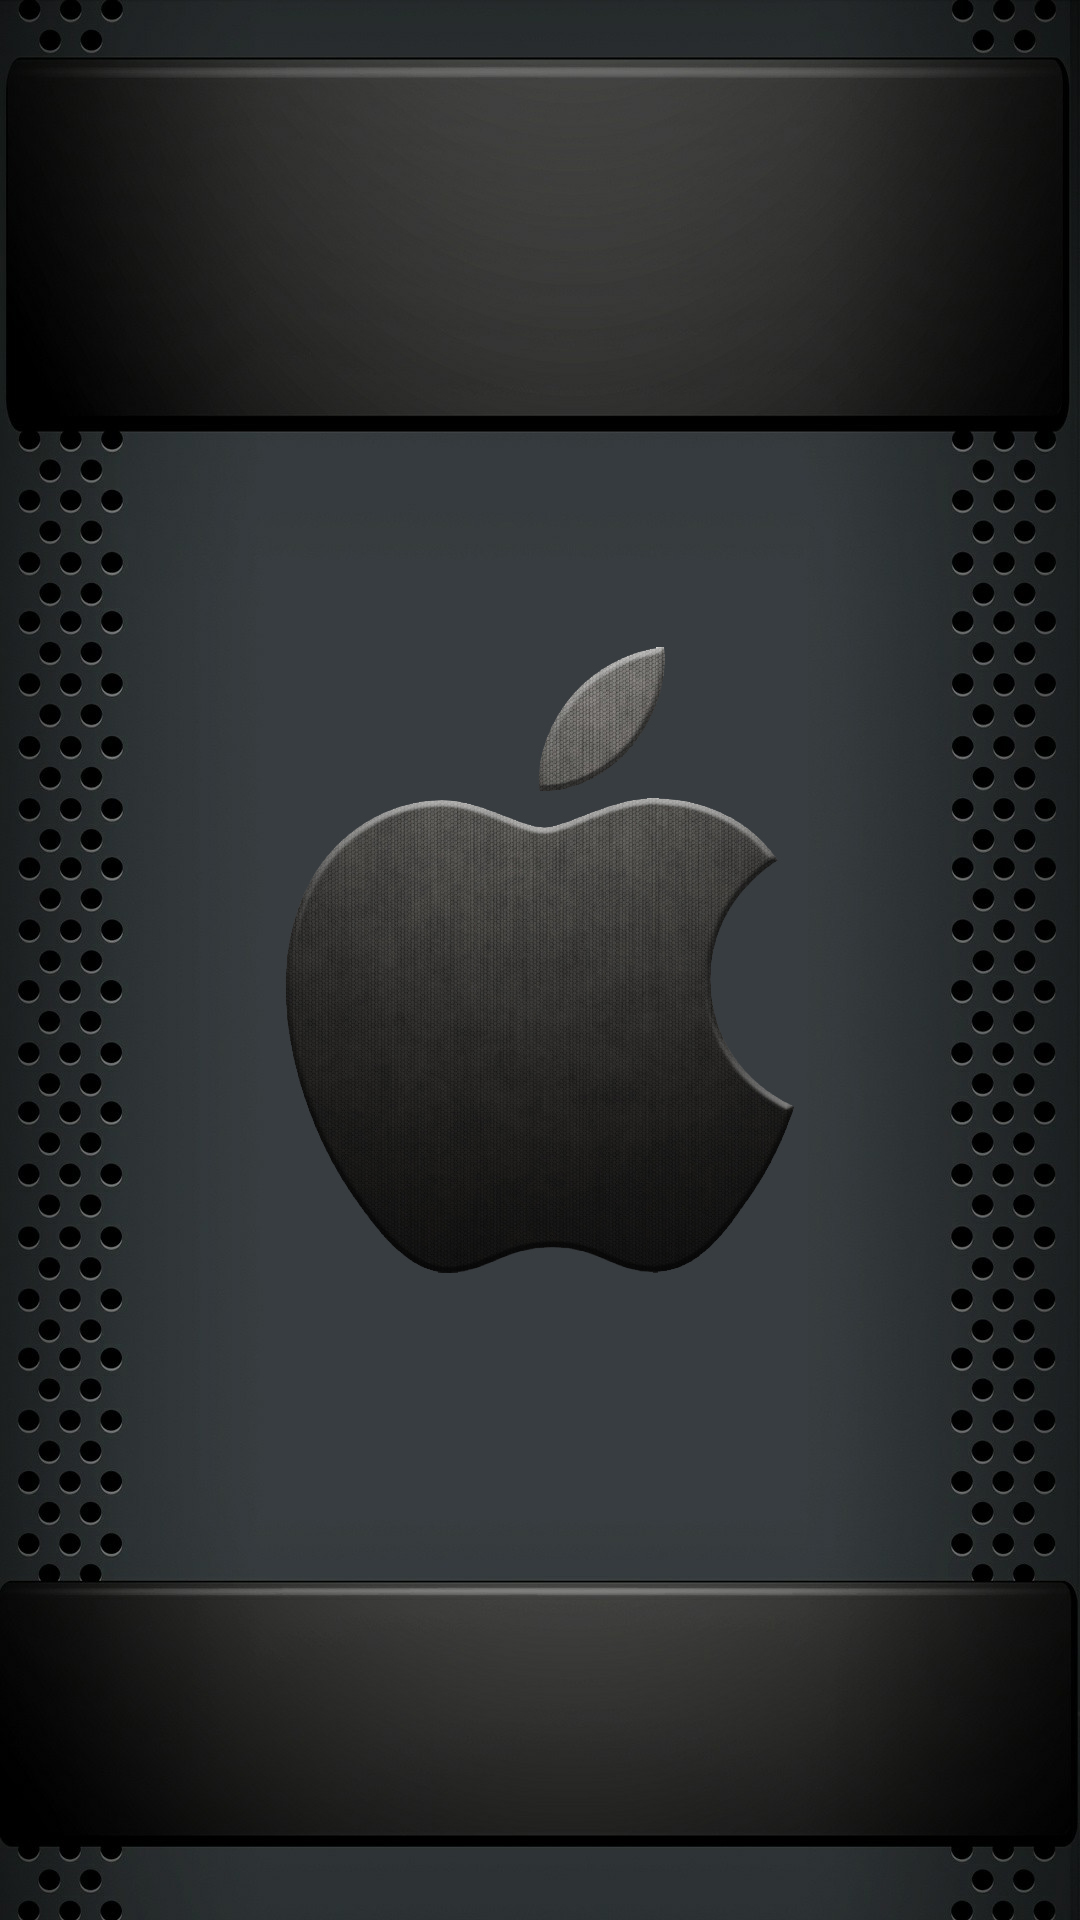 Cool Apple Logo Iphone X Wallpaper Iphone Wallpaper